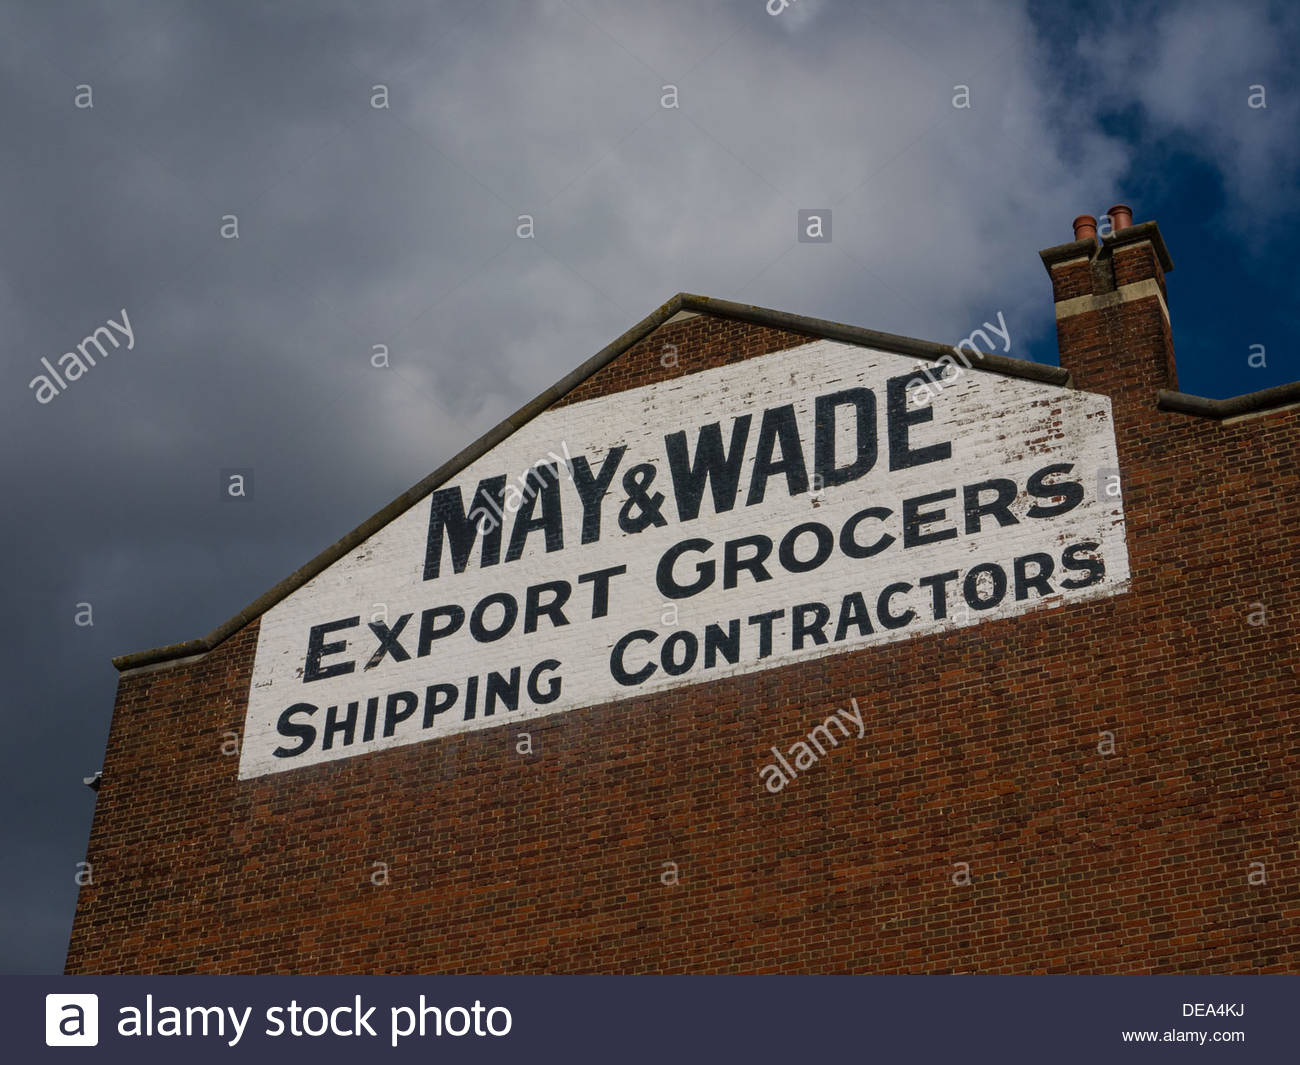 Cld May and Wade Export Grocers Shipping Contractors Building Southampton England UK - Stock Image